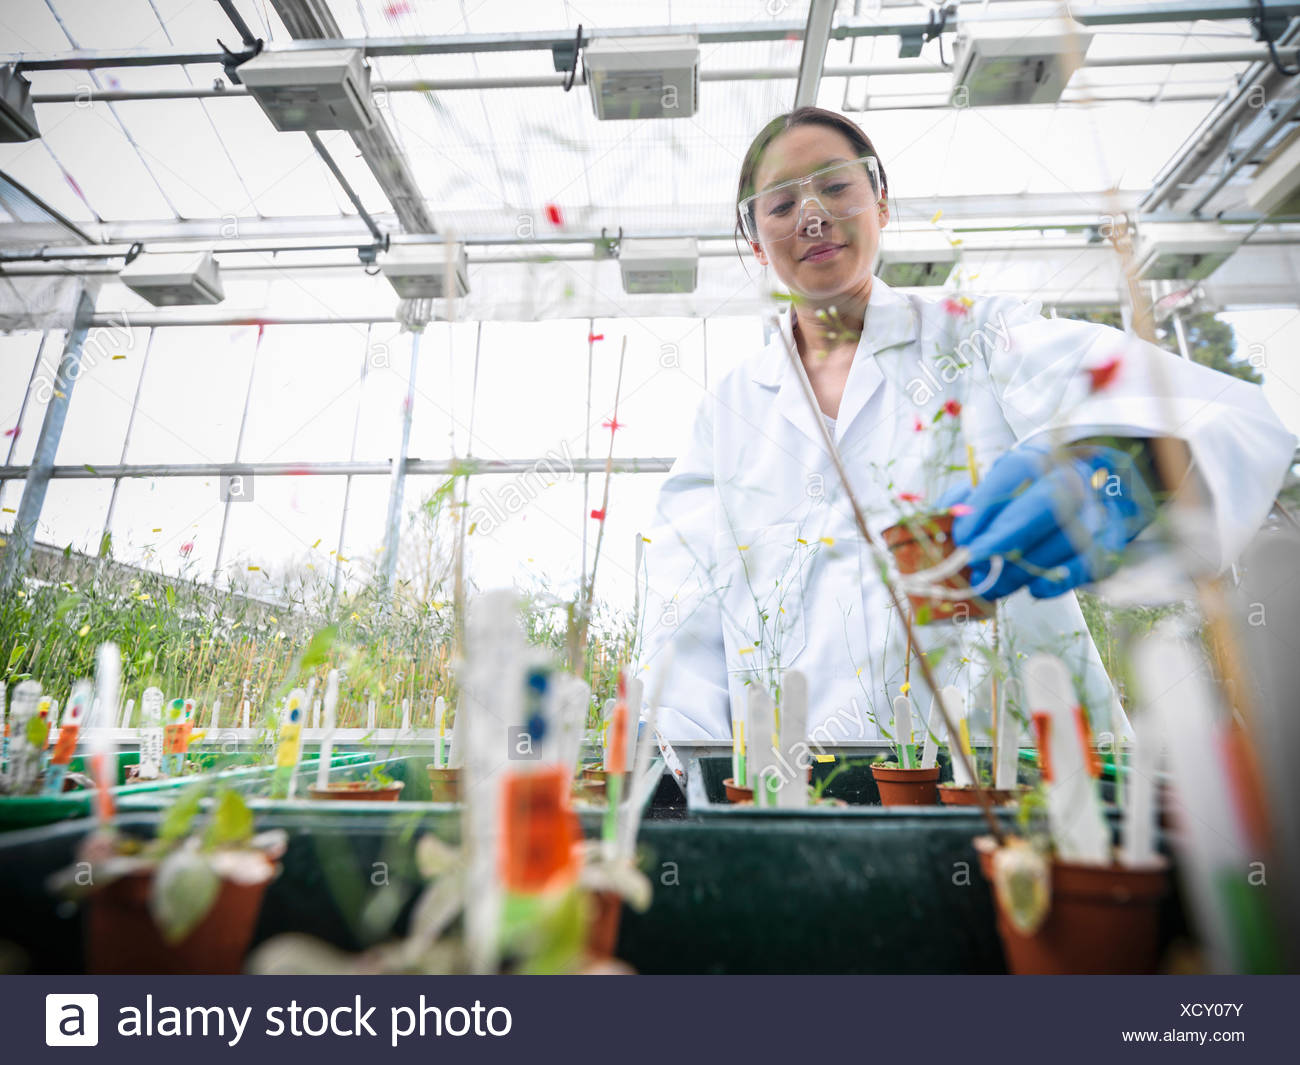 Scientist working with potted plants - Stock Image